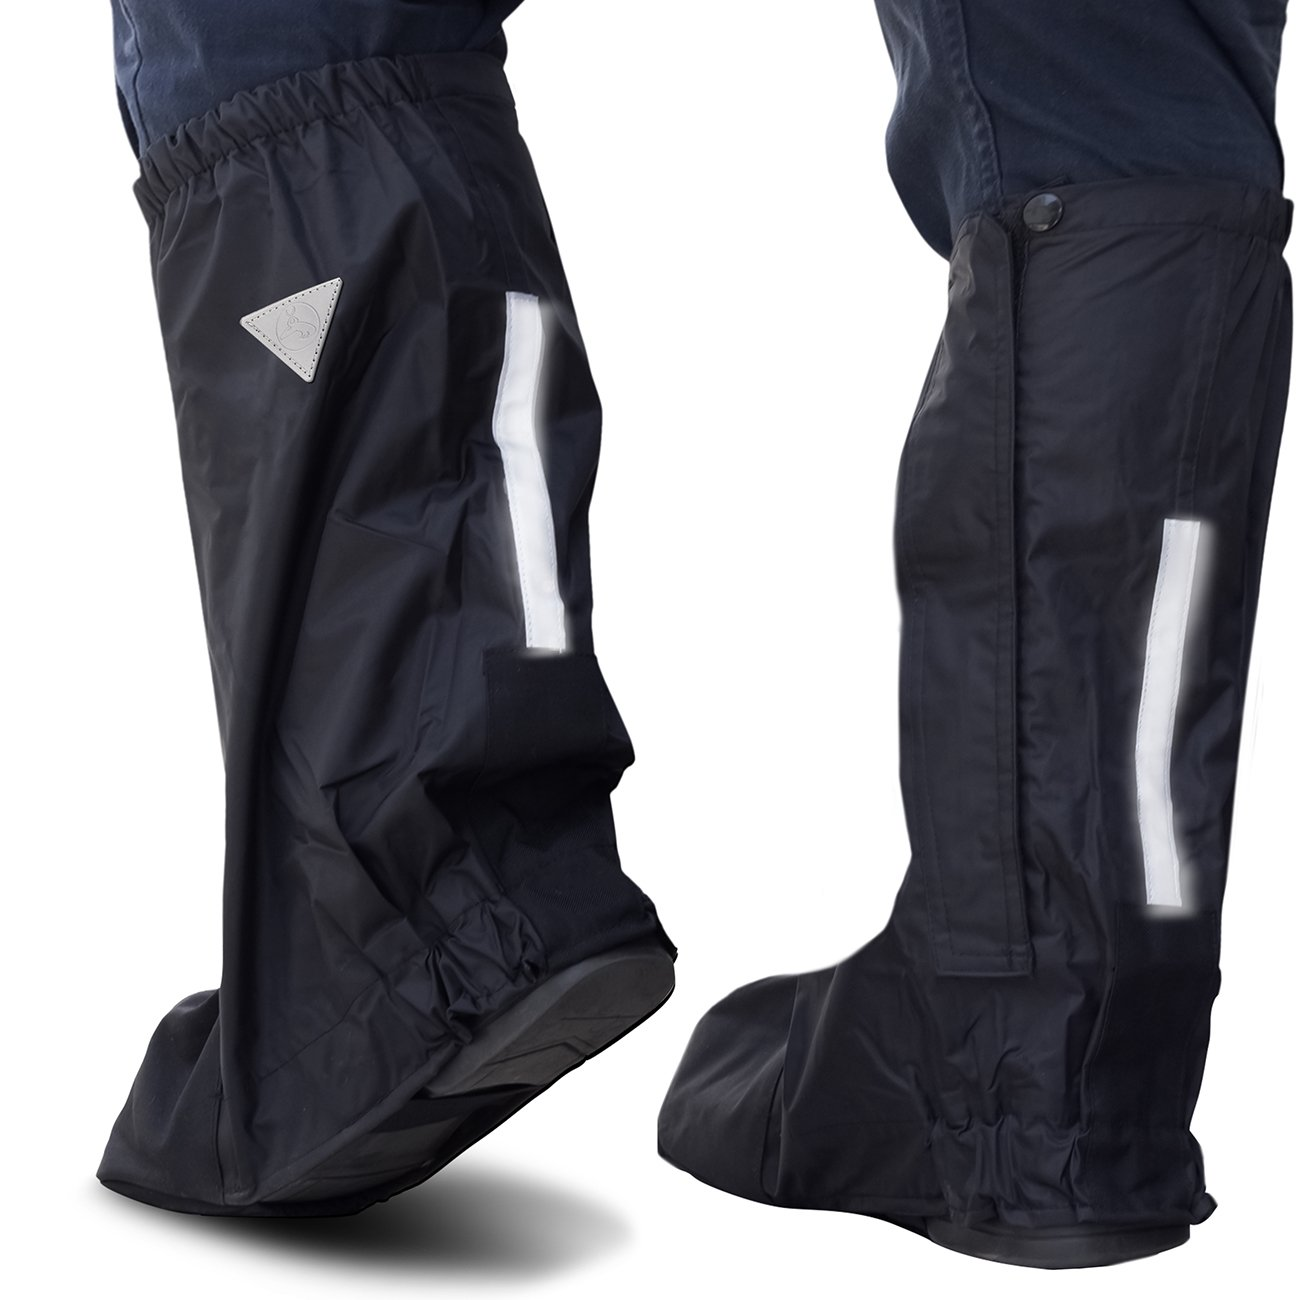 OxGord Motorcycle and Powersport Rain Boot Covers Large Slip Over Elastic